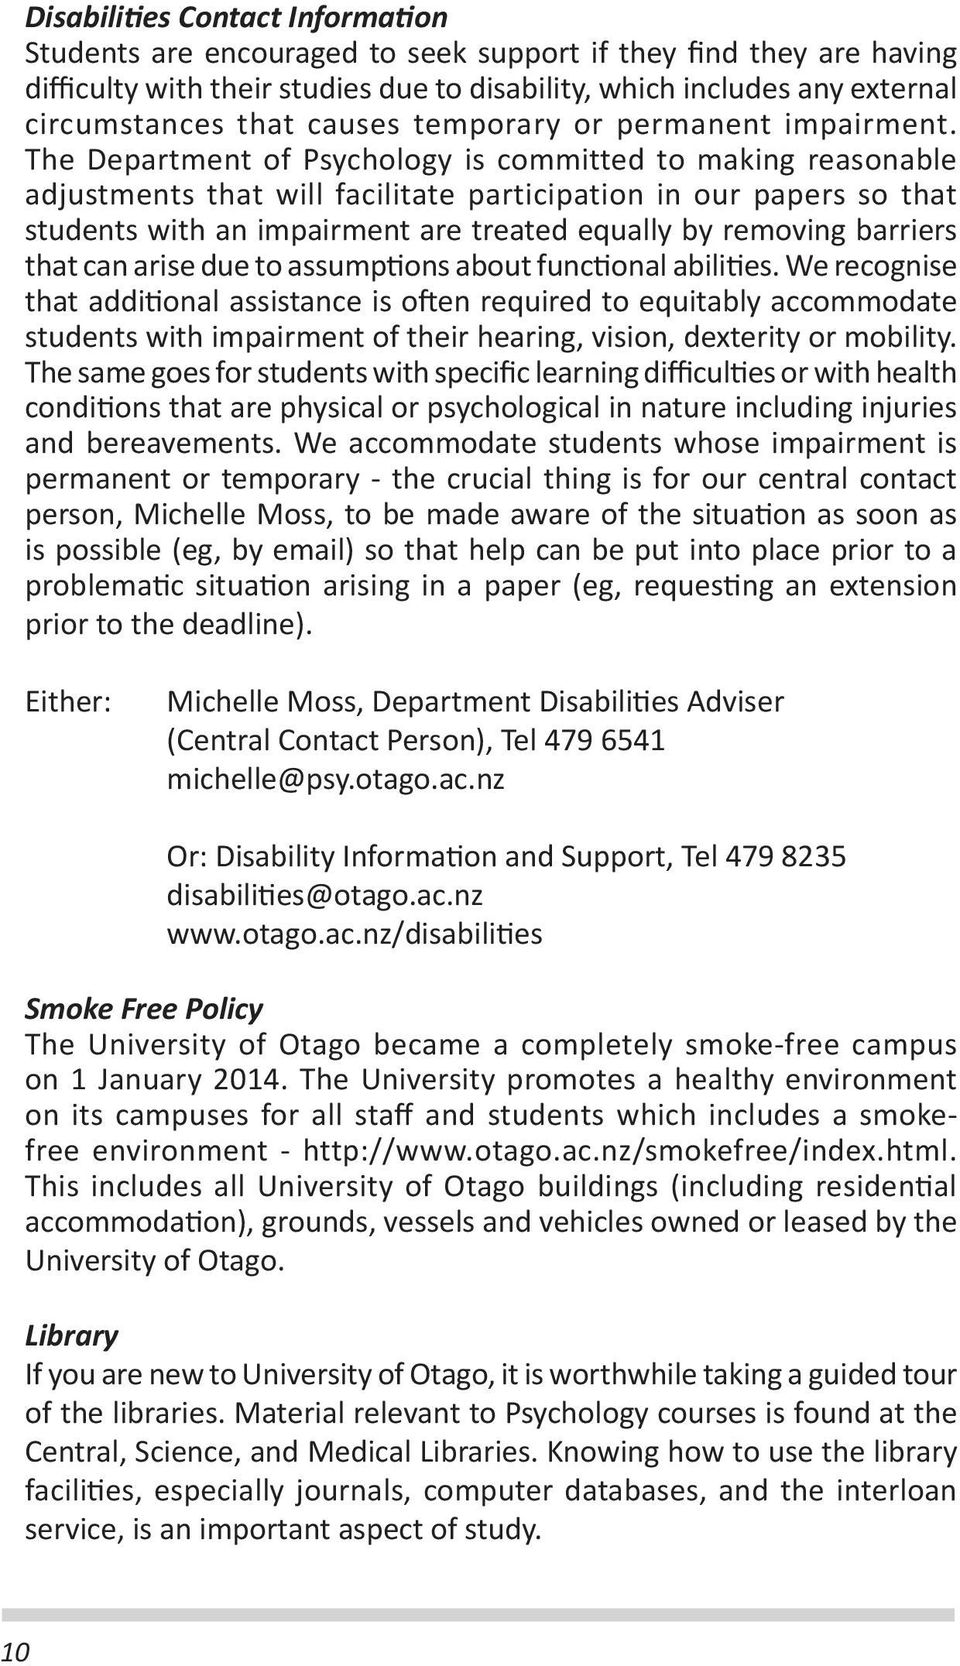 The Department of Psychology is committed to making reasonable adjustments that will facilitate participation in our papers so that students with an impairment are treated equally by removing